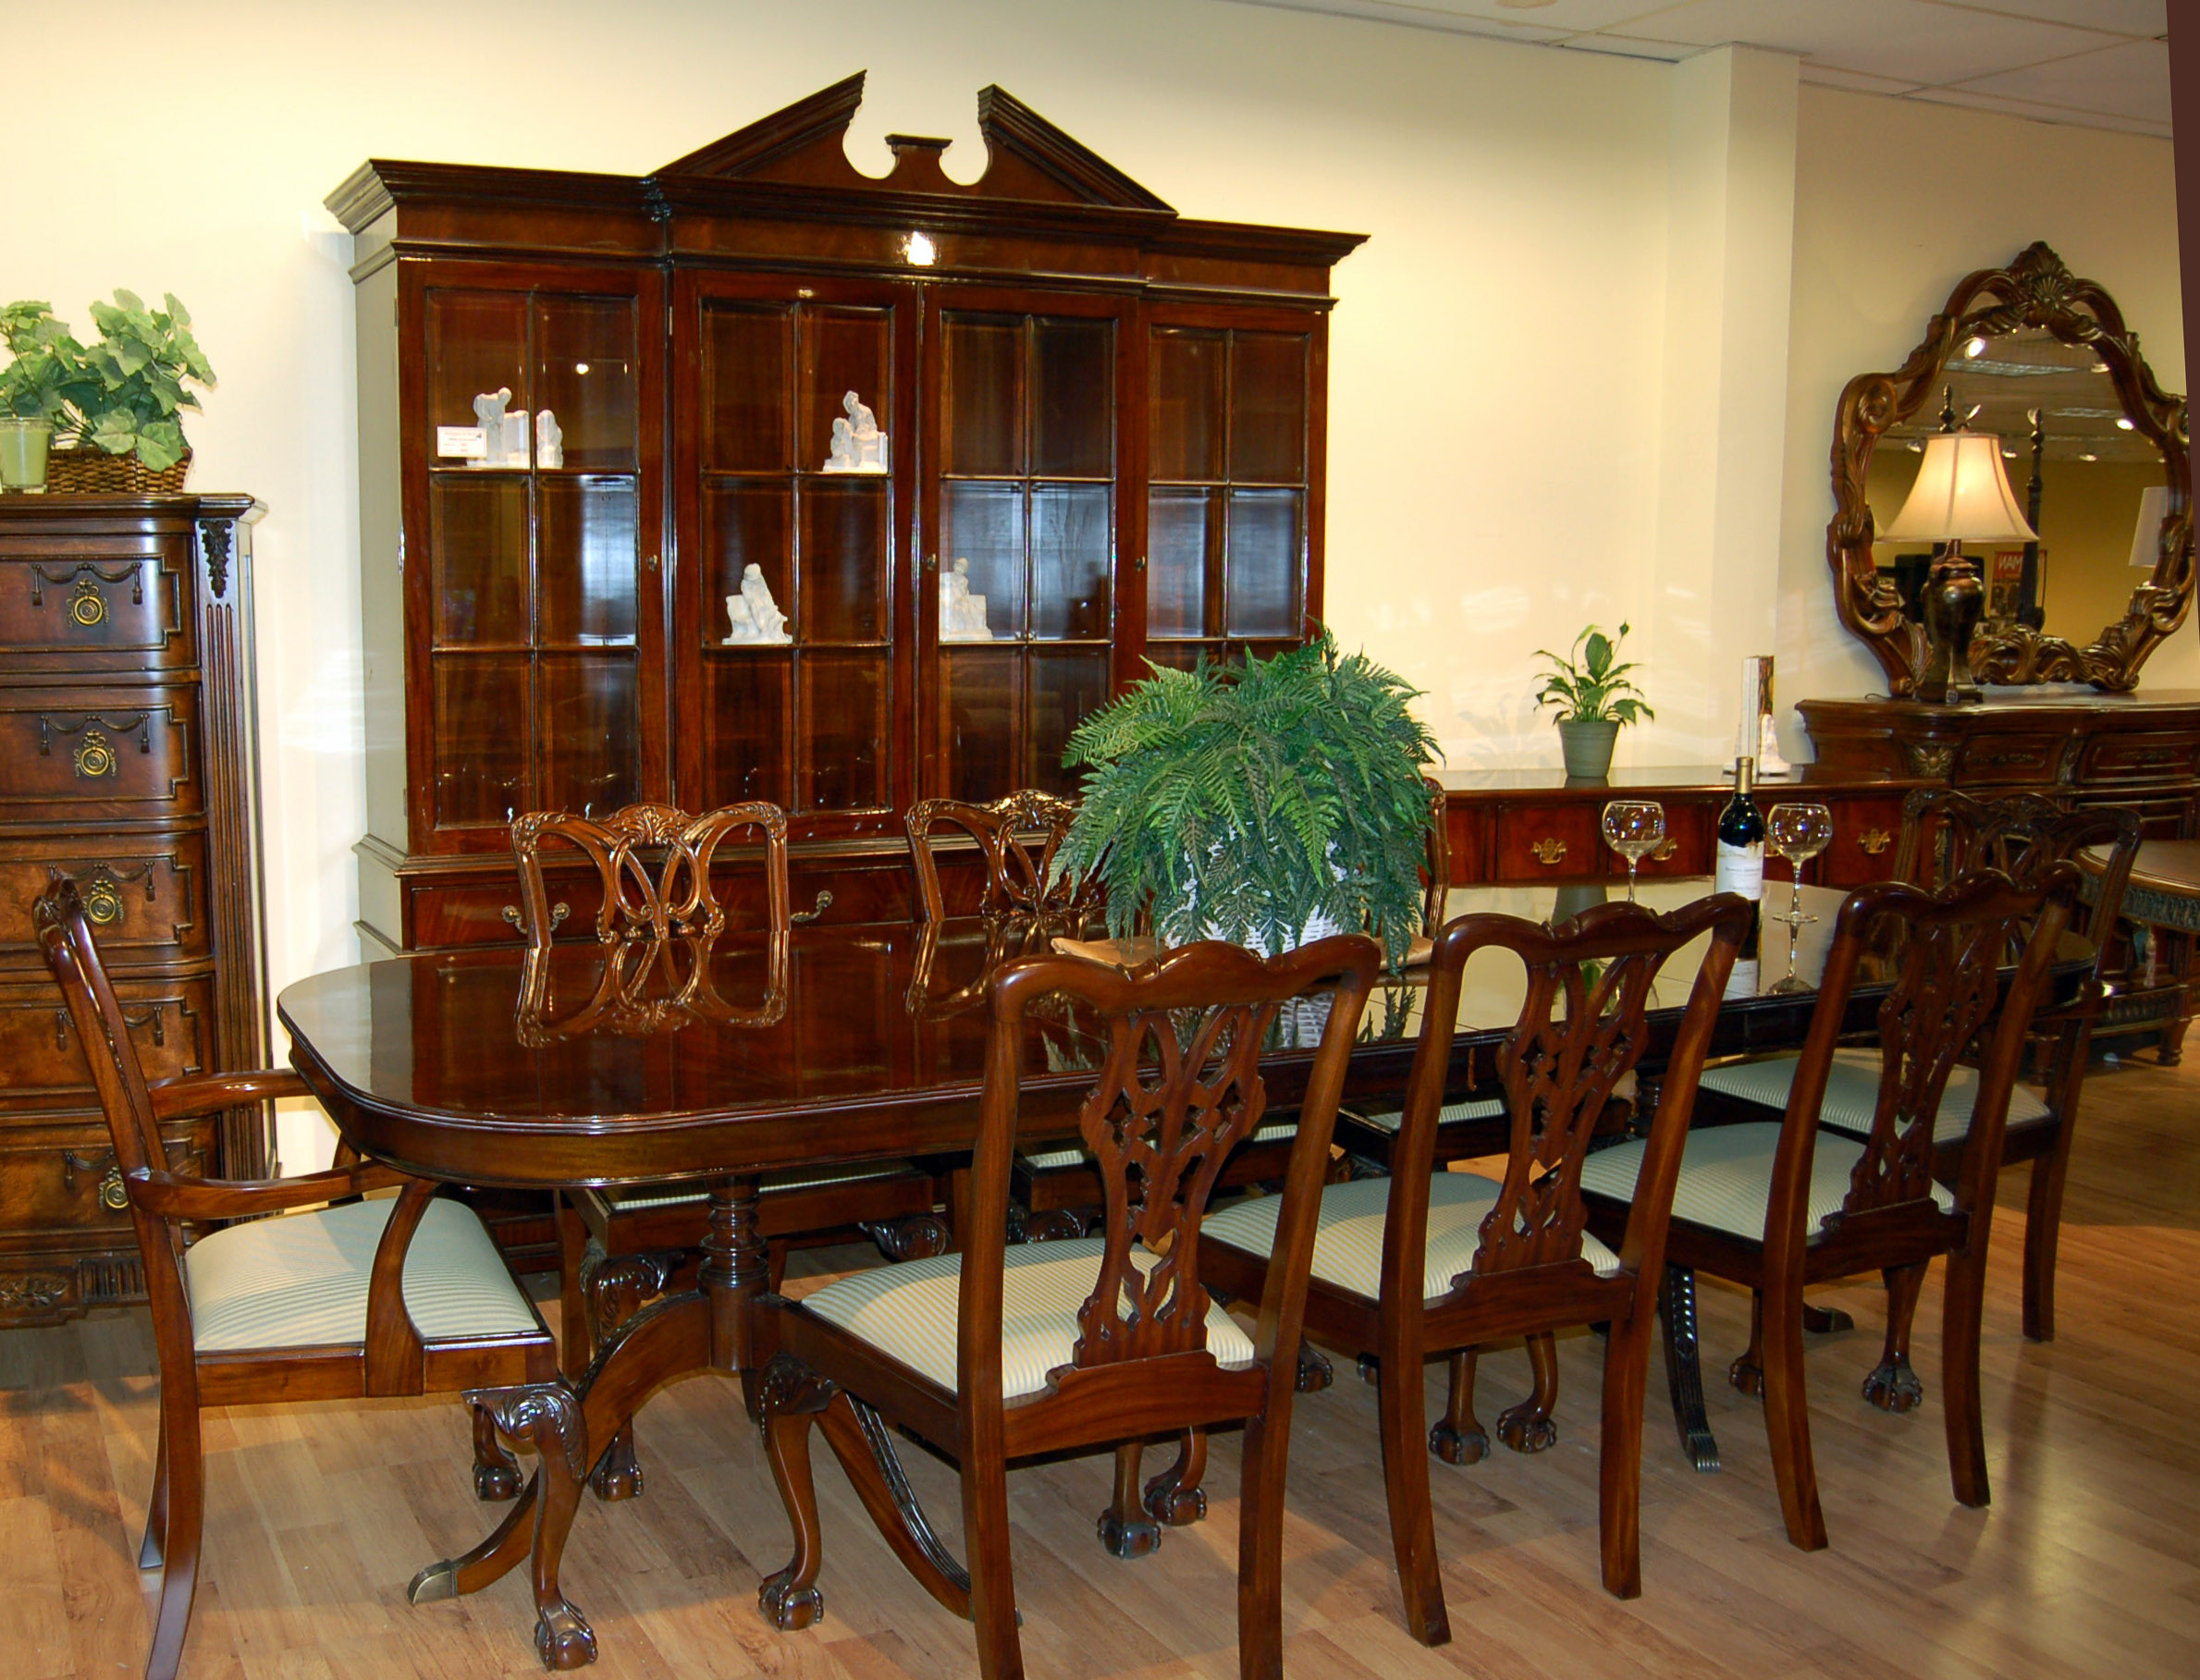 Image for Mahogany dining room